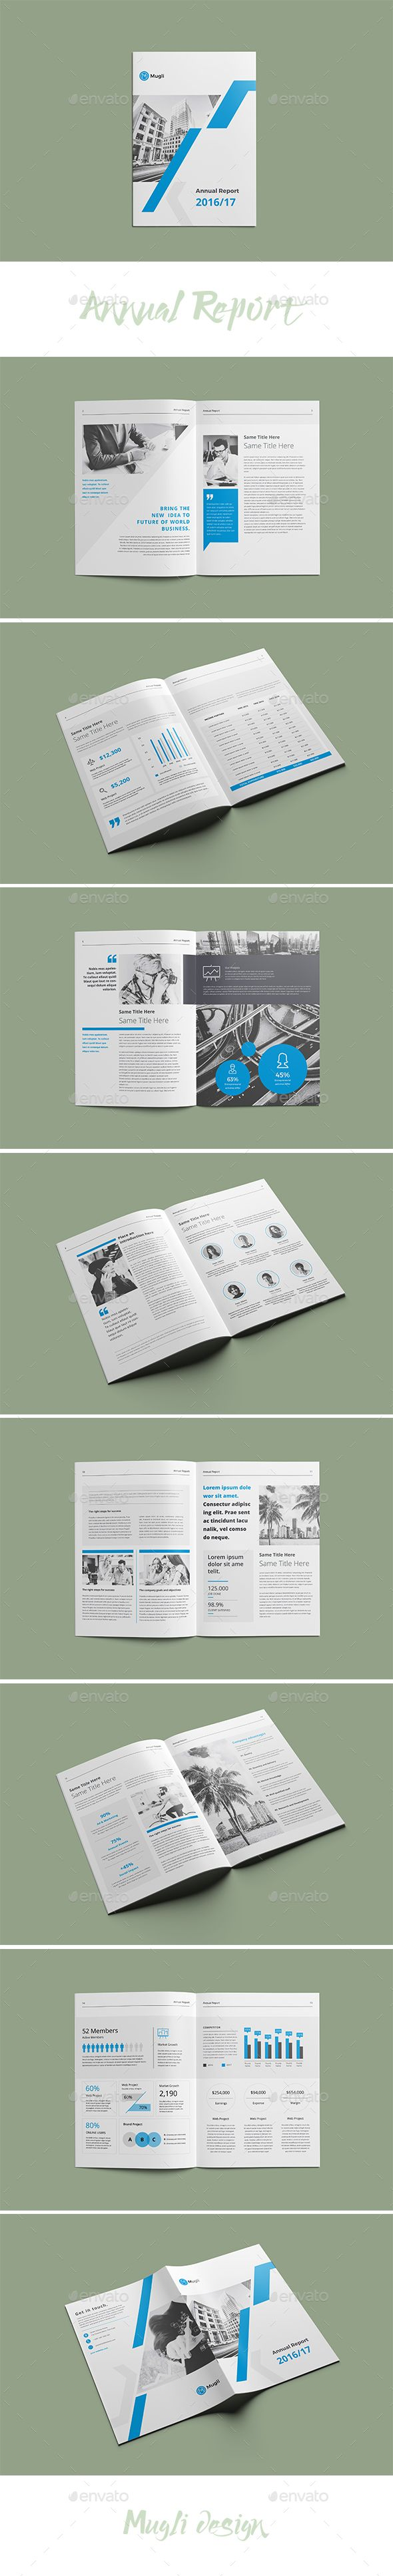 Annual Report - #Corporate #Brochures Download here: https://graphicriver.net/item/annual-report/19974379?ref=alena994